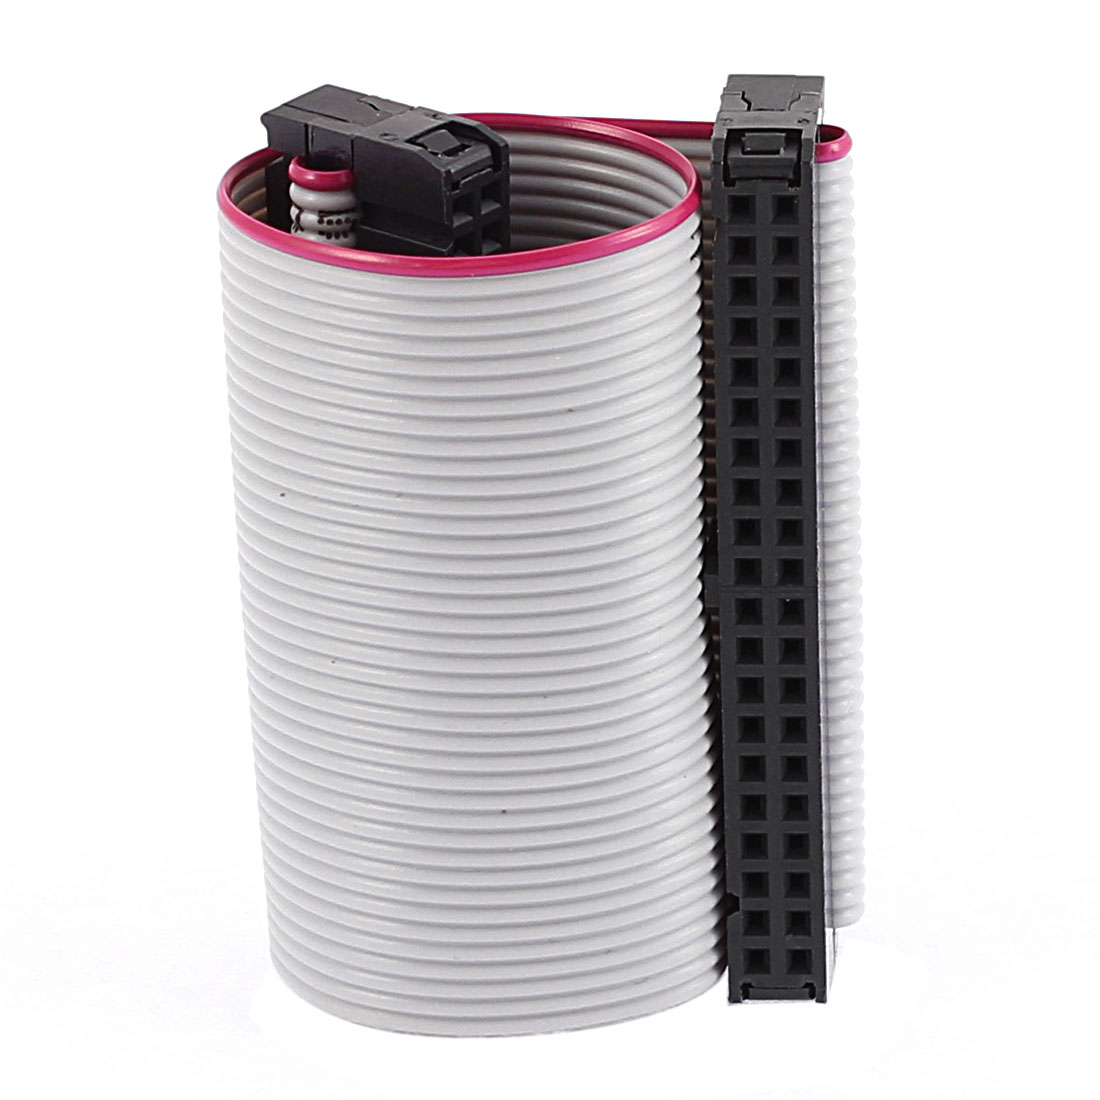 2.54mm Pitch 40 Pins 40 Wires F/F IDC Connector Flat Ribbon Cable 4 Inch Length